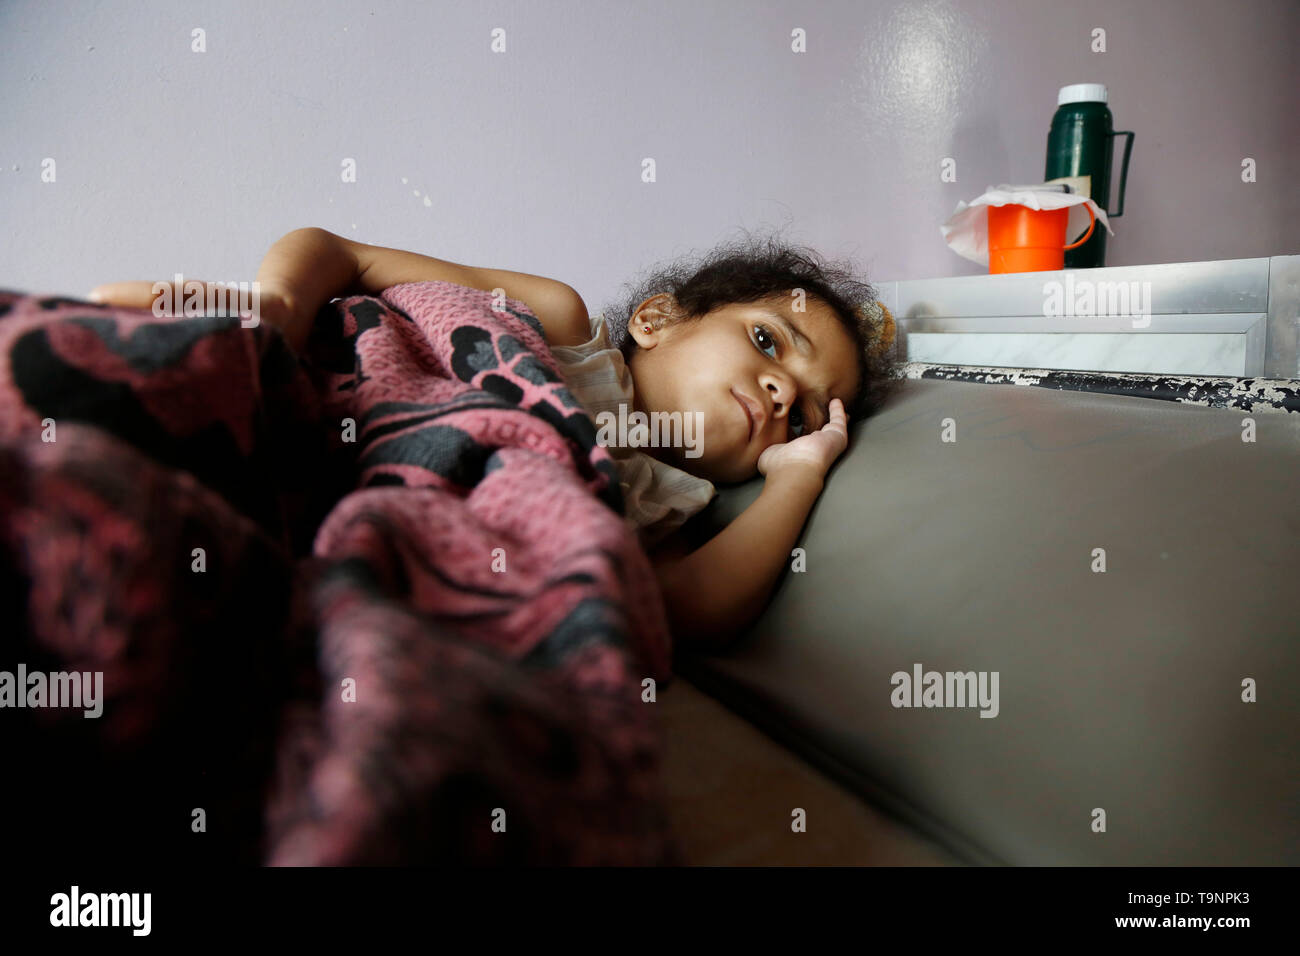 (190520) -- SANAA, May 20, 2019 (Xinhua) -- A malnourished girl lies on a bed while receiving treatment at a malnutrition care-center in Sanaa, Yemen, on May 19, 2019. With 360,000 children suffering from severe acute malnutrition and 2.5 million - or half of all children under the age of five - stunted, the country is spiralling perilously close to the brink, Executive Director of the United Nations Children's Fund  (UNICEF) Henrietta Fore warned. (Xinhua/Mohammed Mohammed) - Stock Image